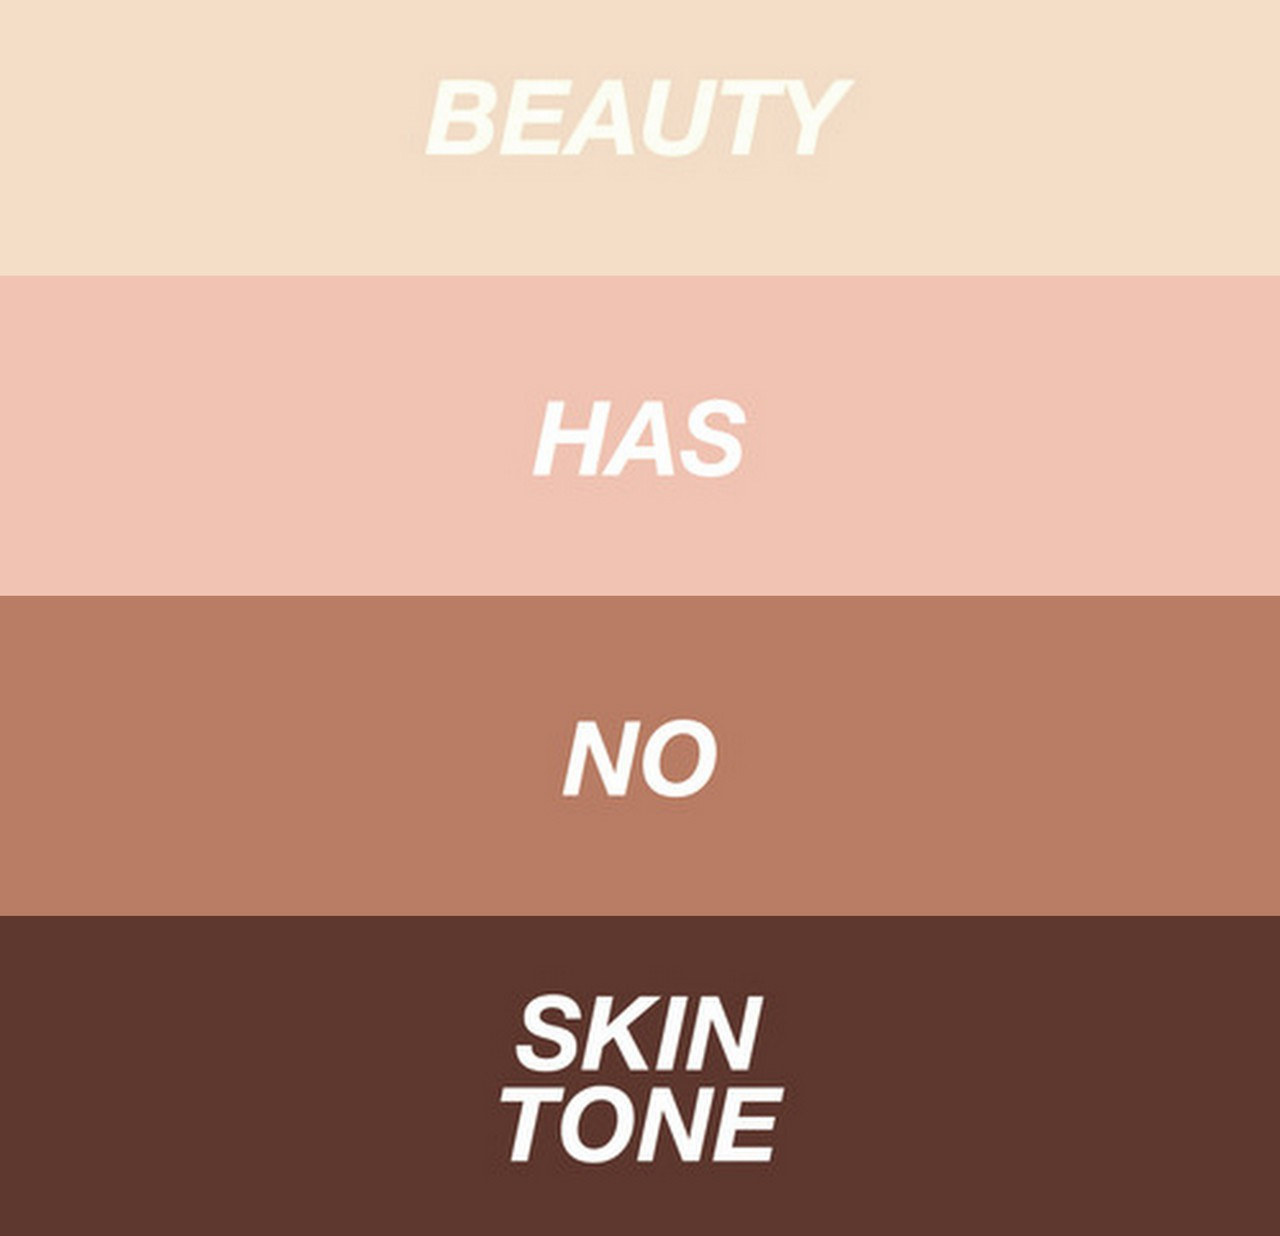 Beauty has no skin tone.